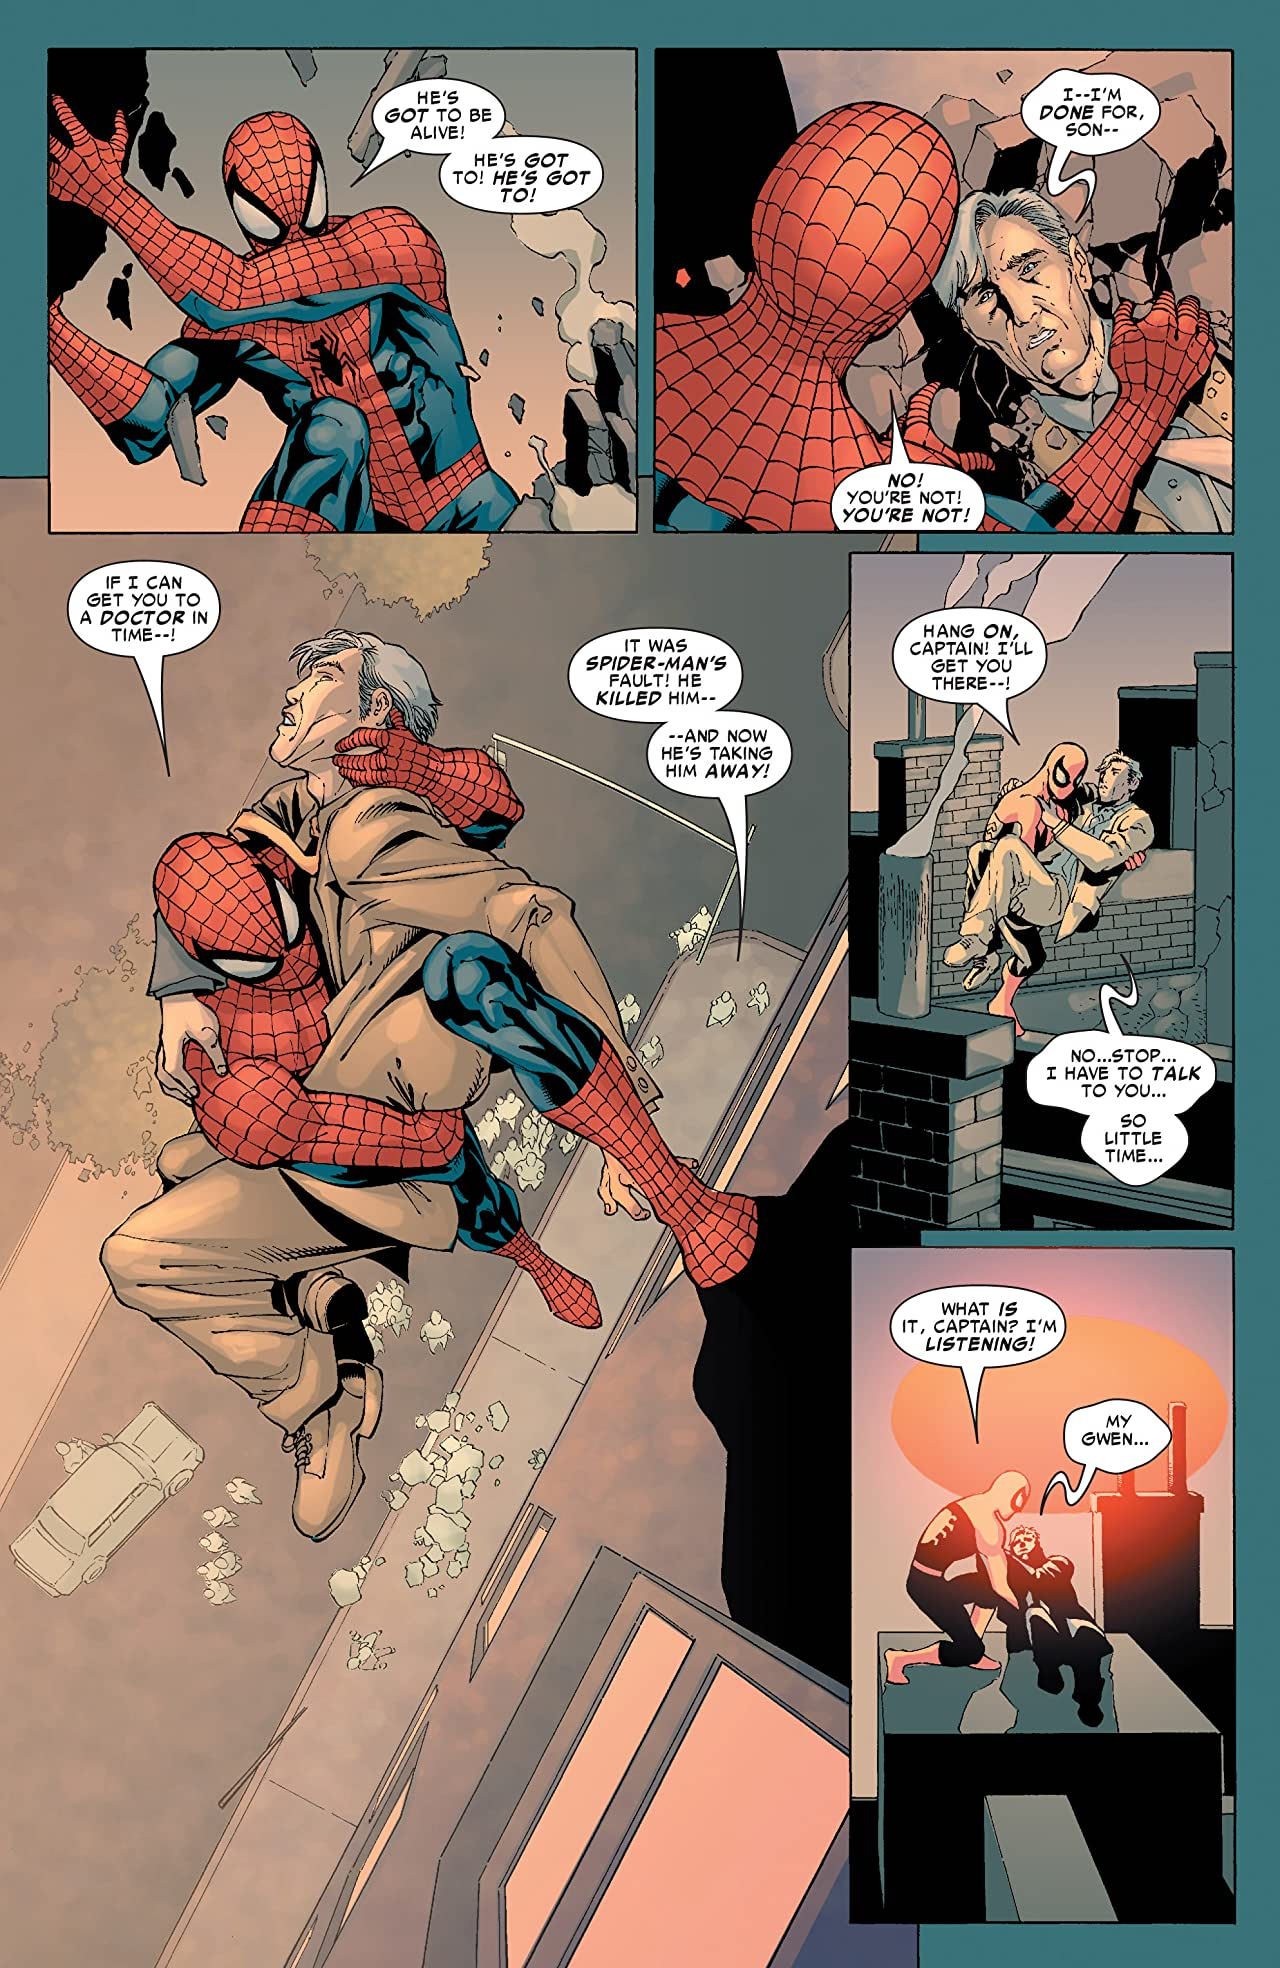 Spider-Man: House Of M #5 (of 5)